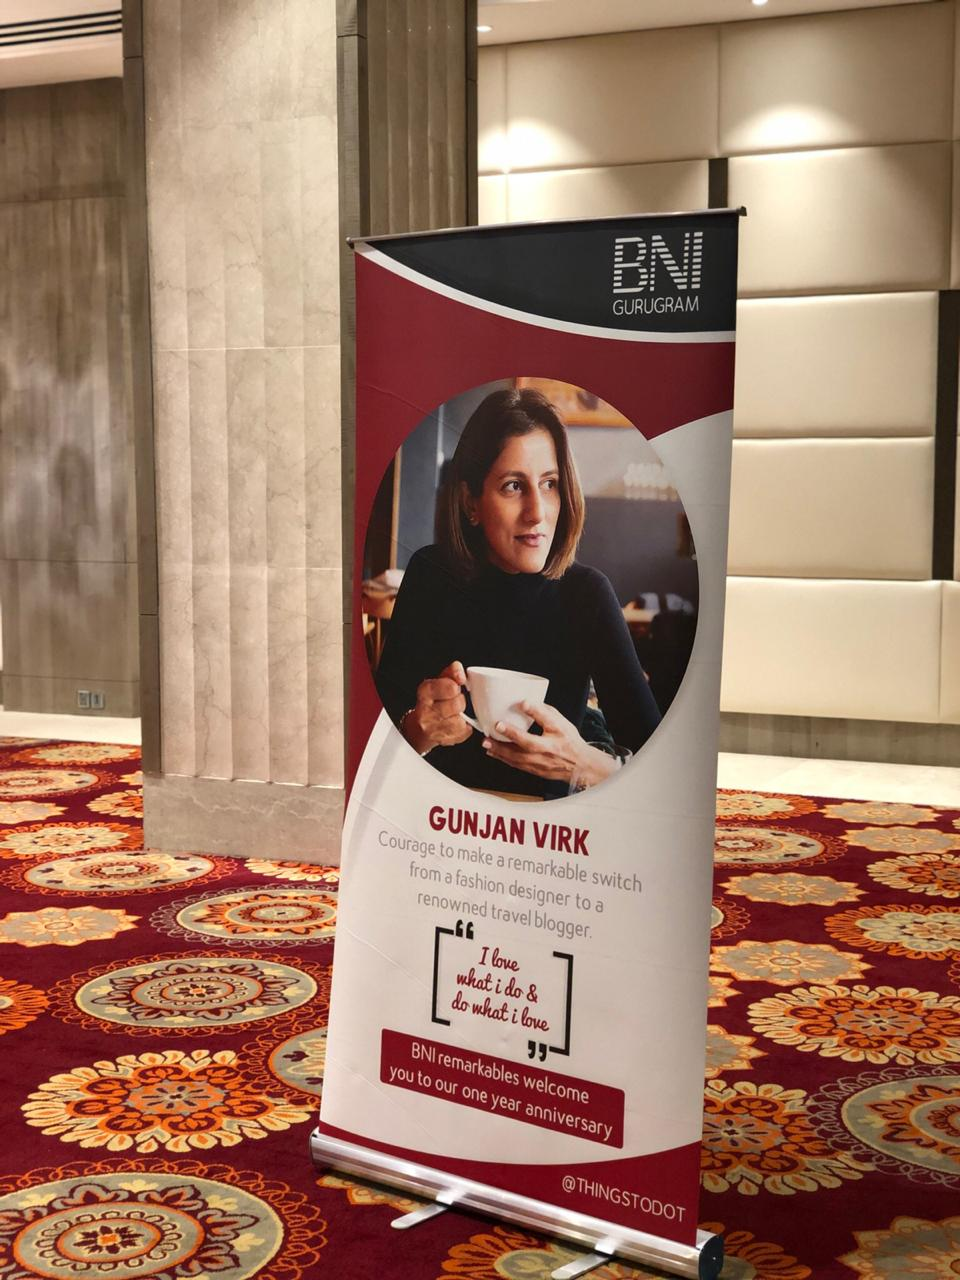 BNI Conference, Ramada Gurgaon Central, Gurugram, India.